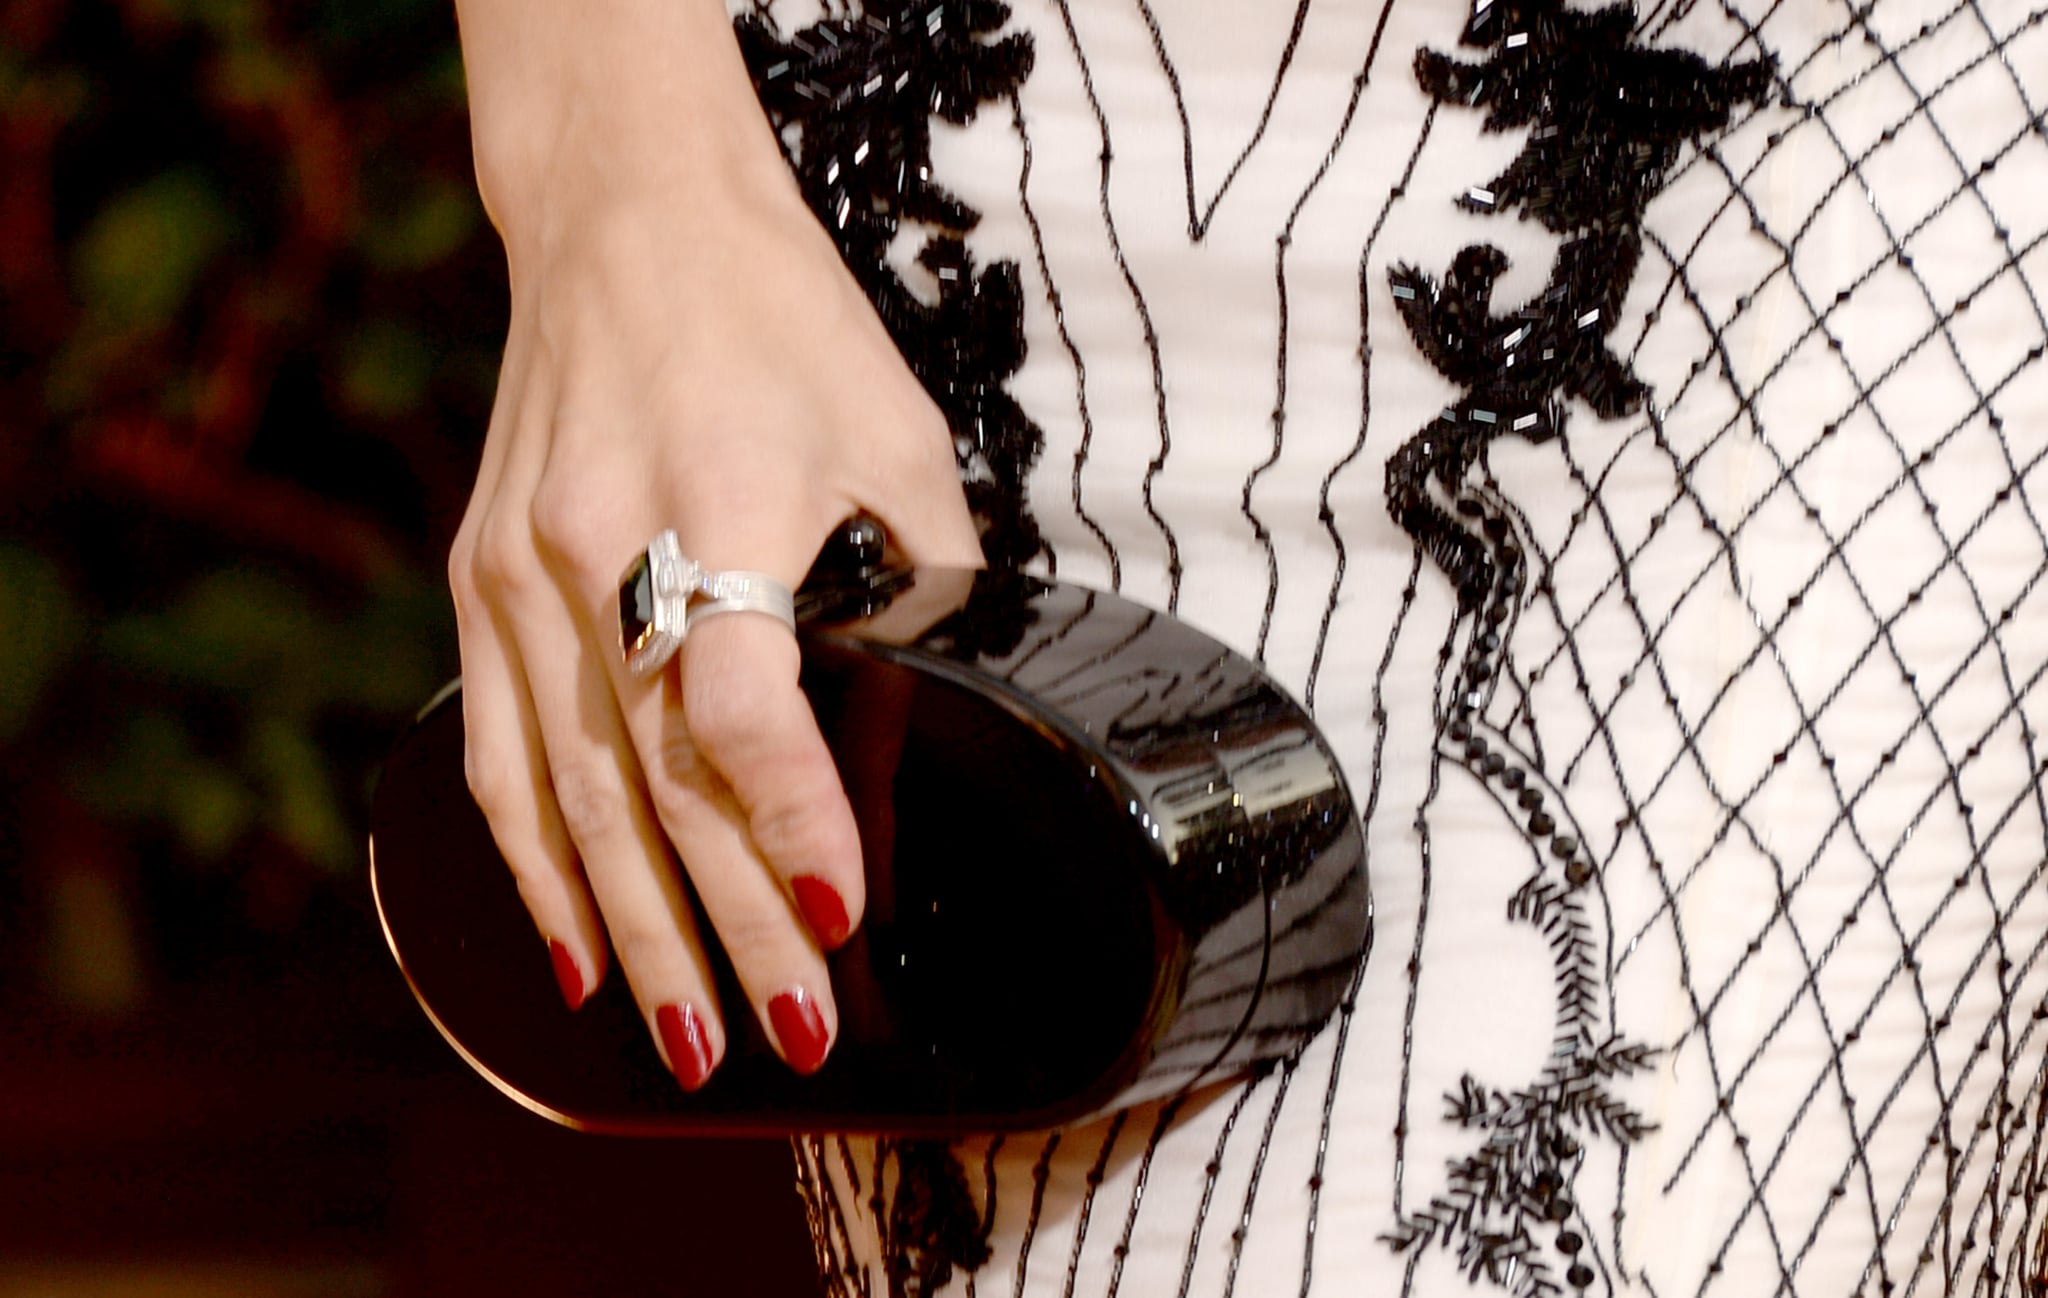 Jenna Dewan kept it coordinated with a black Edie Parker clutch and an Irene Neuwirth cocktail ring.